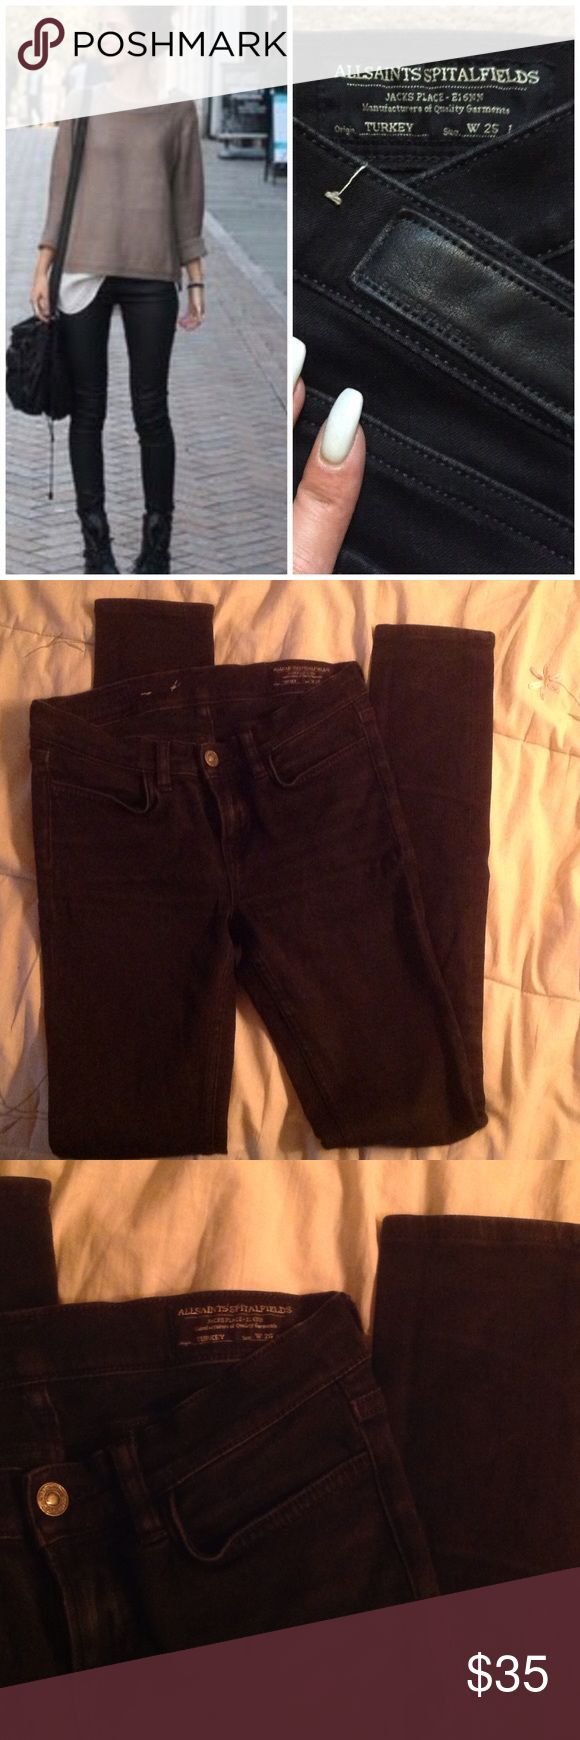 All Saints Spitalfields W 26 L 32 Washed Out Jeans Amazing jeans from All Saints, black washed out look.  Lightly used, W 26 L 32. All Saints Jeans